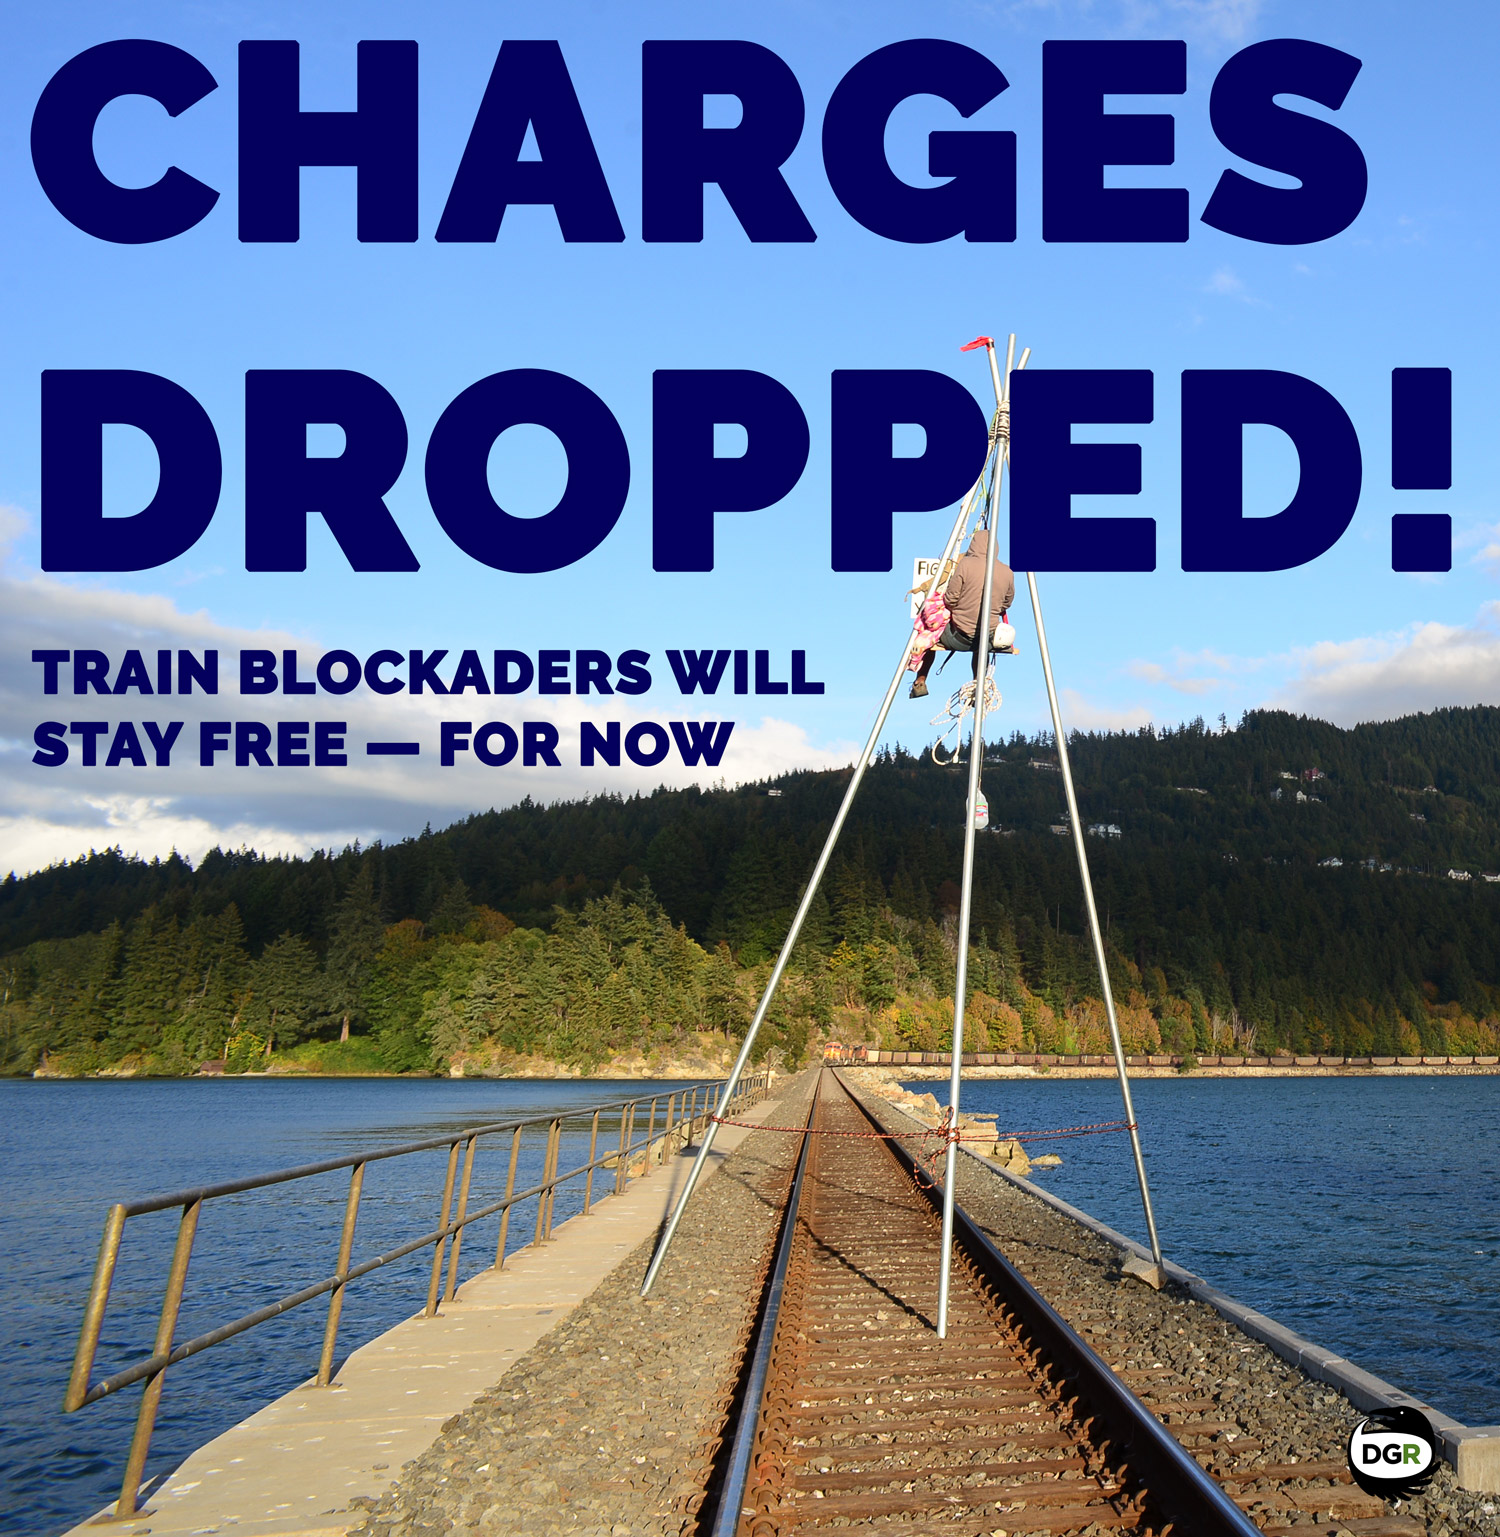 Charges Dropped In August Coal Train Blockade Case